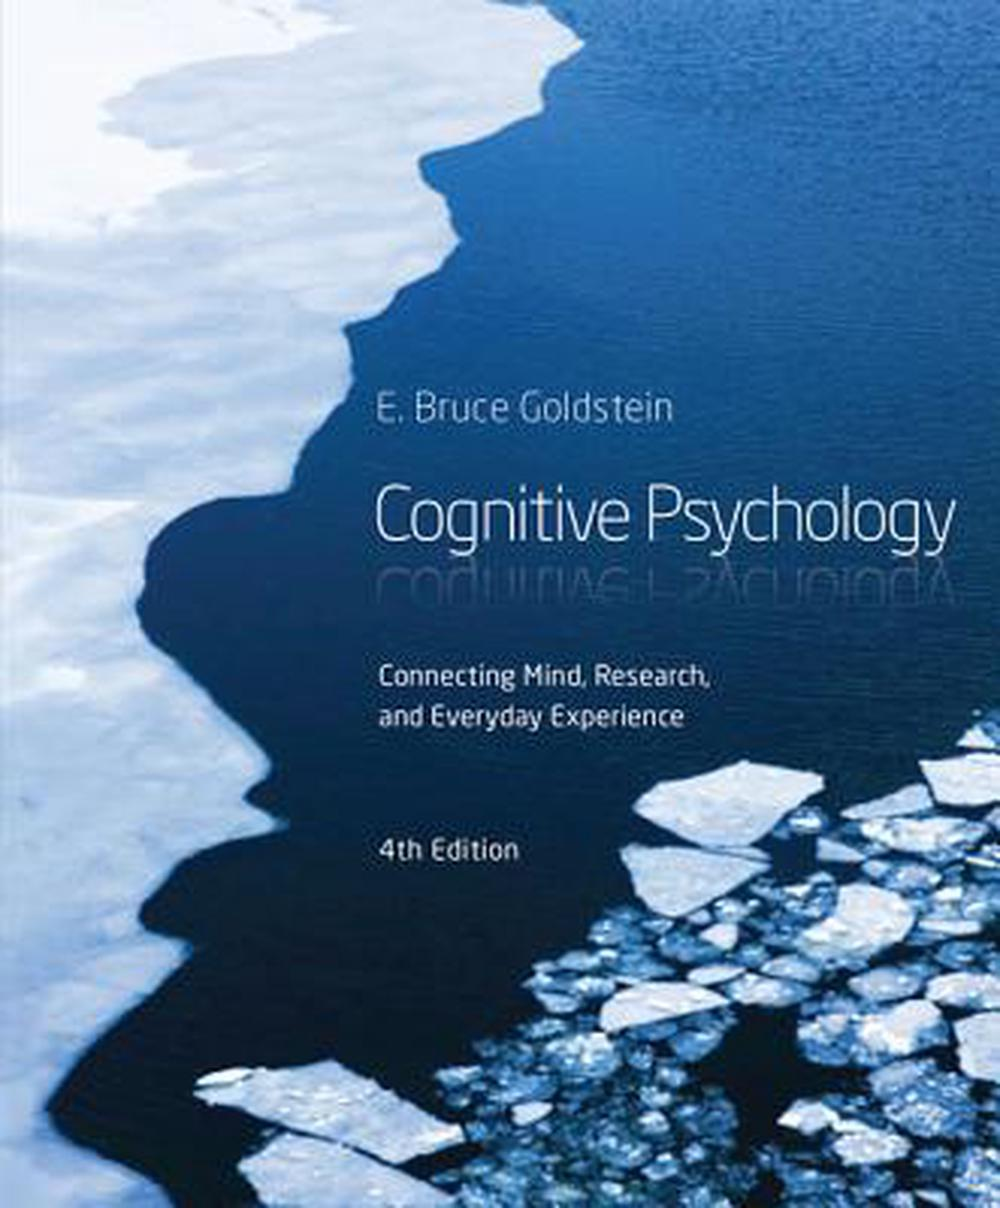 Cognitive Psychology, 4th Edition